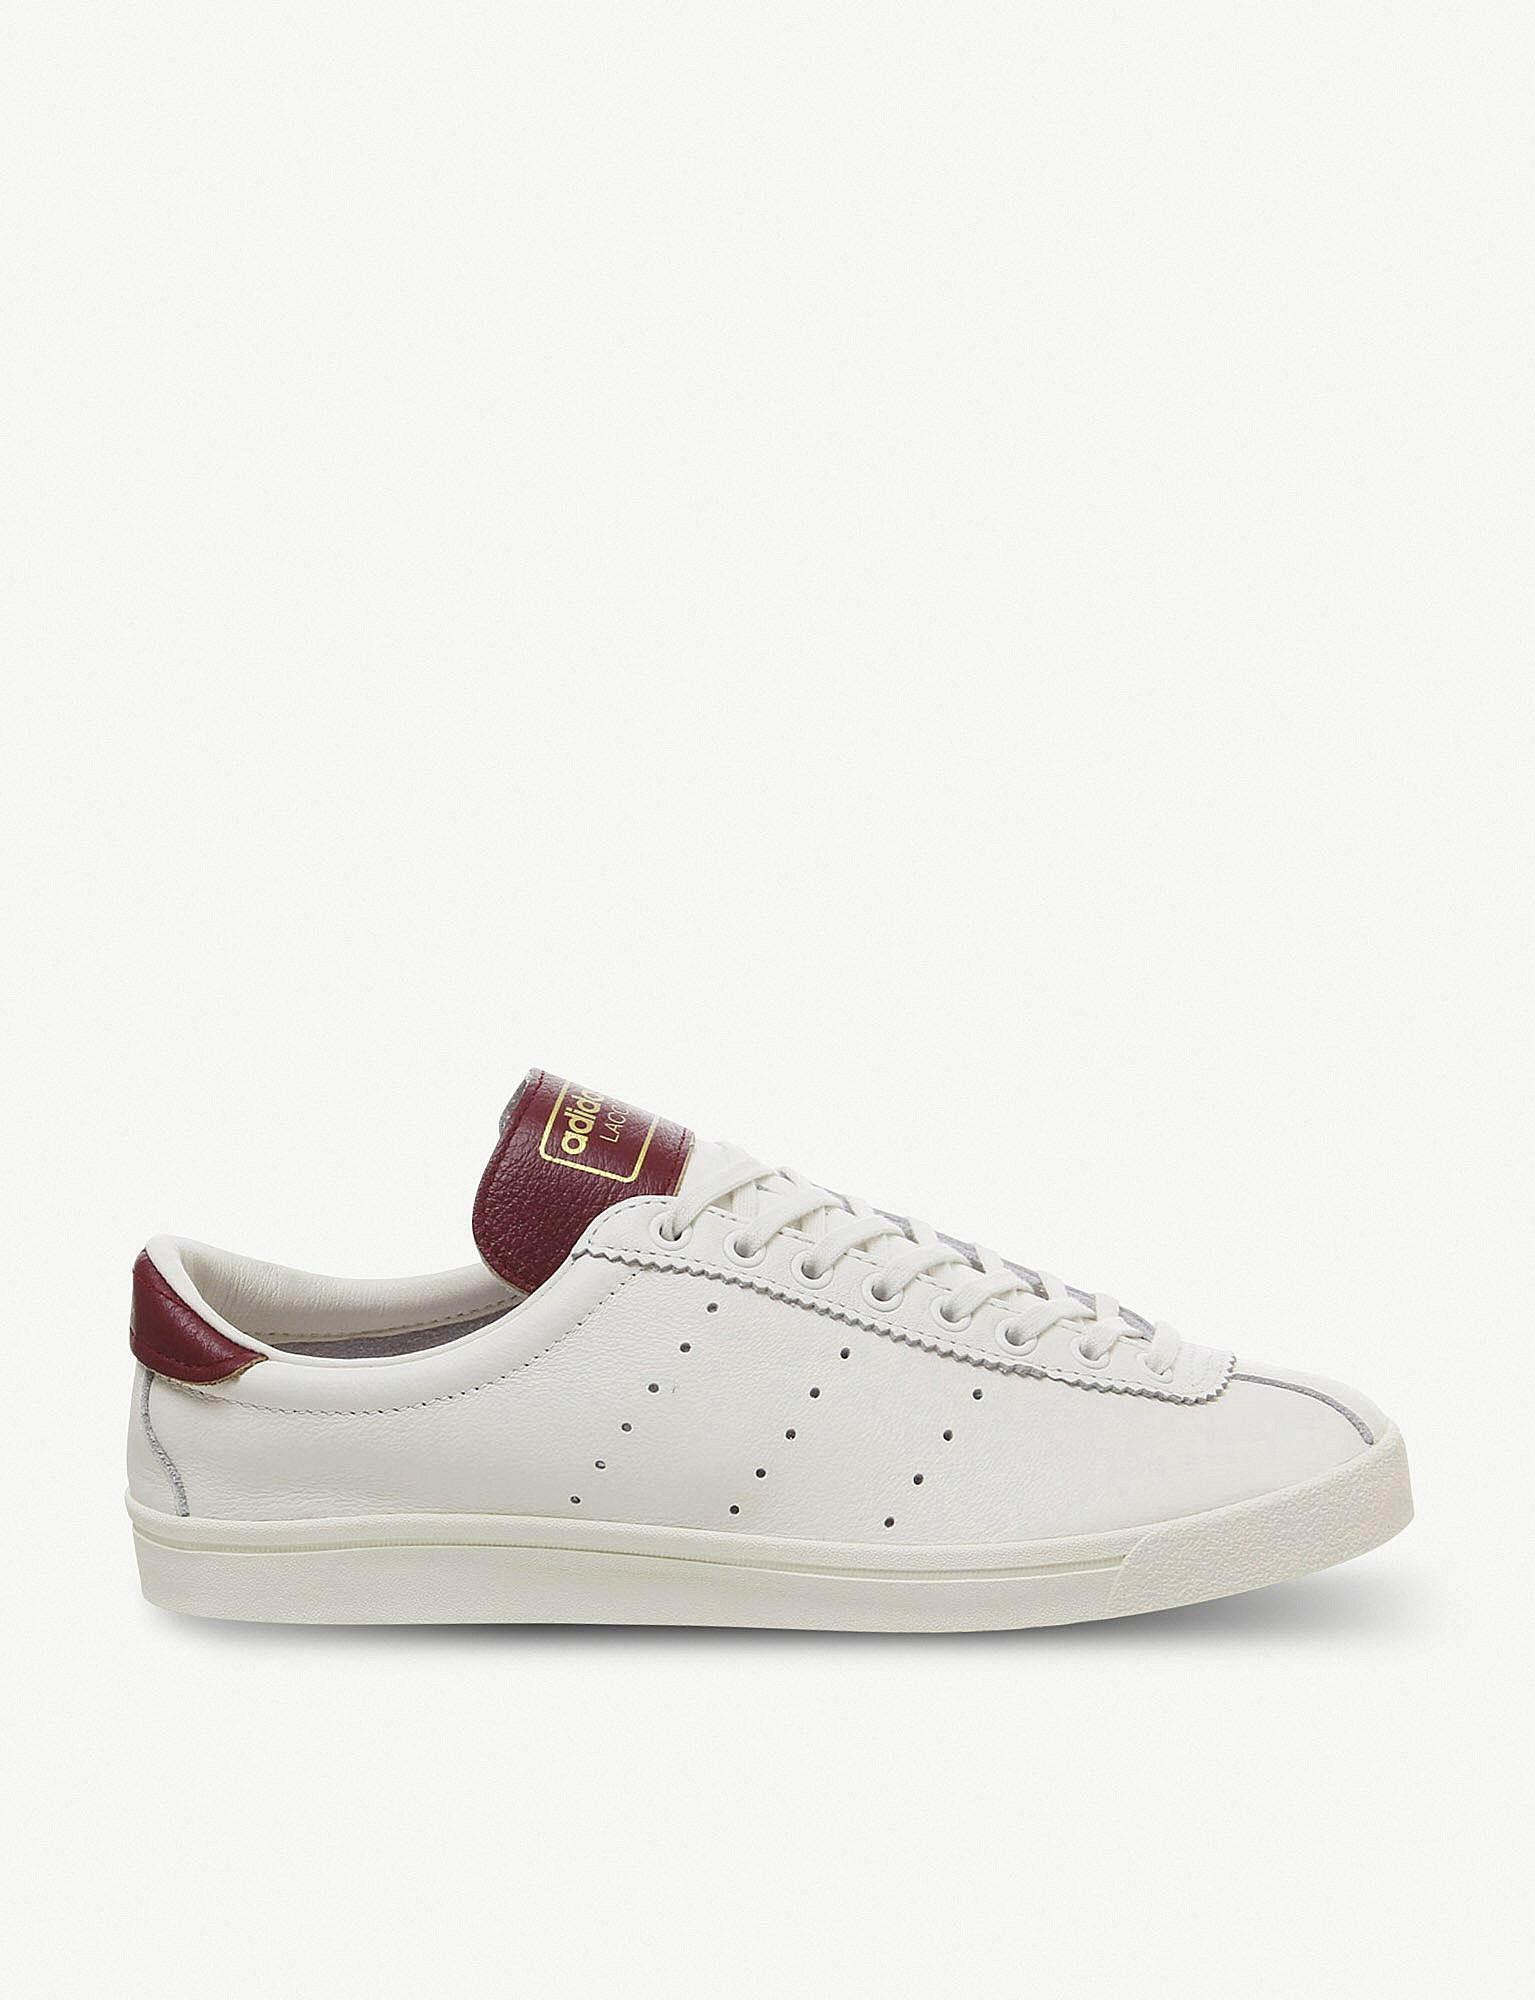 wholesale dealer 8d1a7 88199 Lyst - adidas Lacombe Spezial Leather Trainers in White for Men